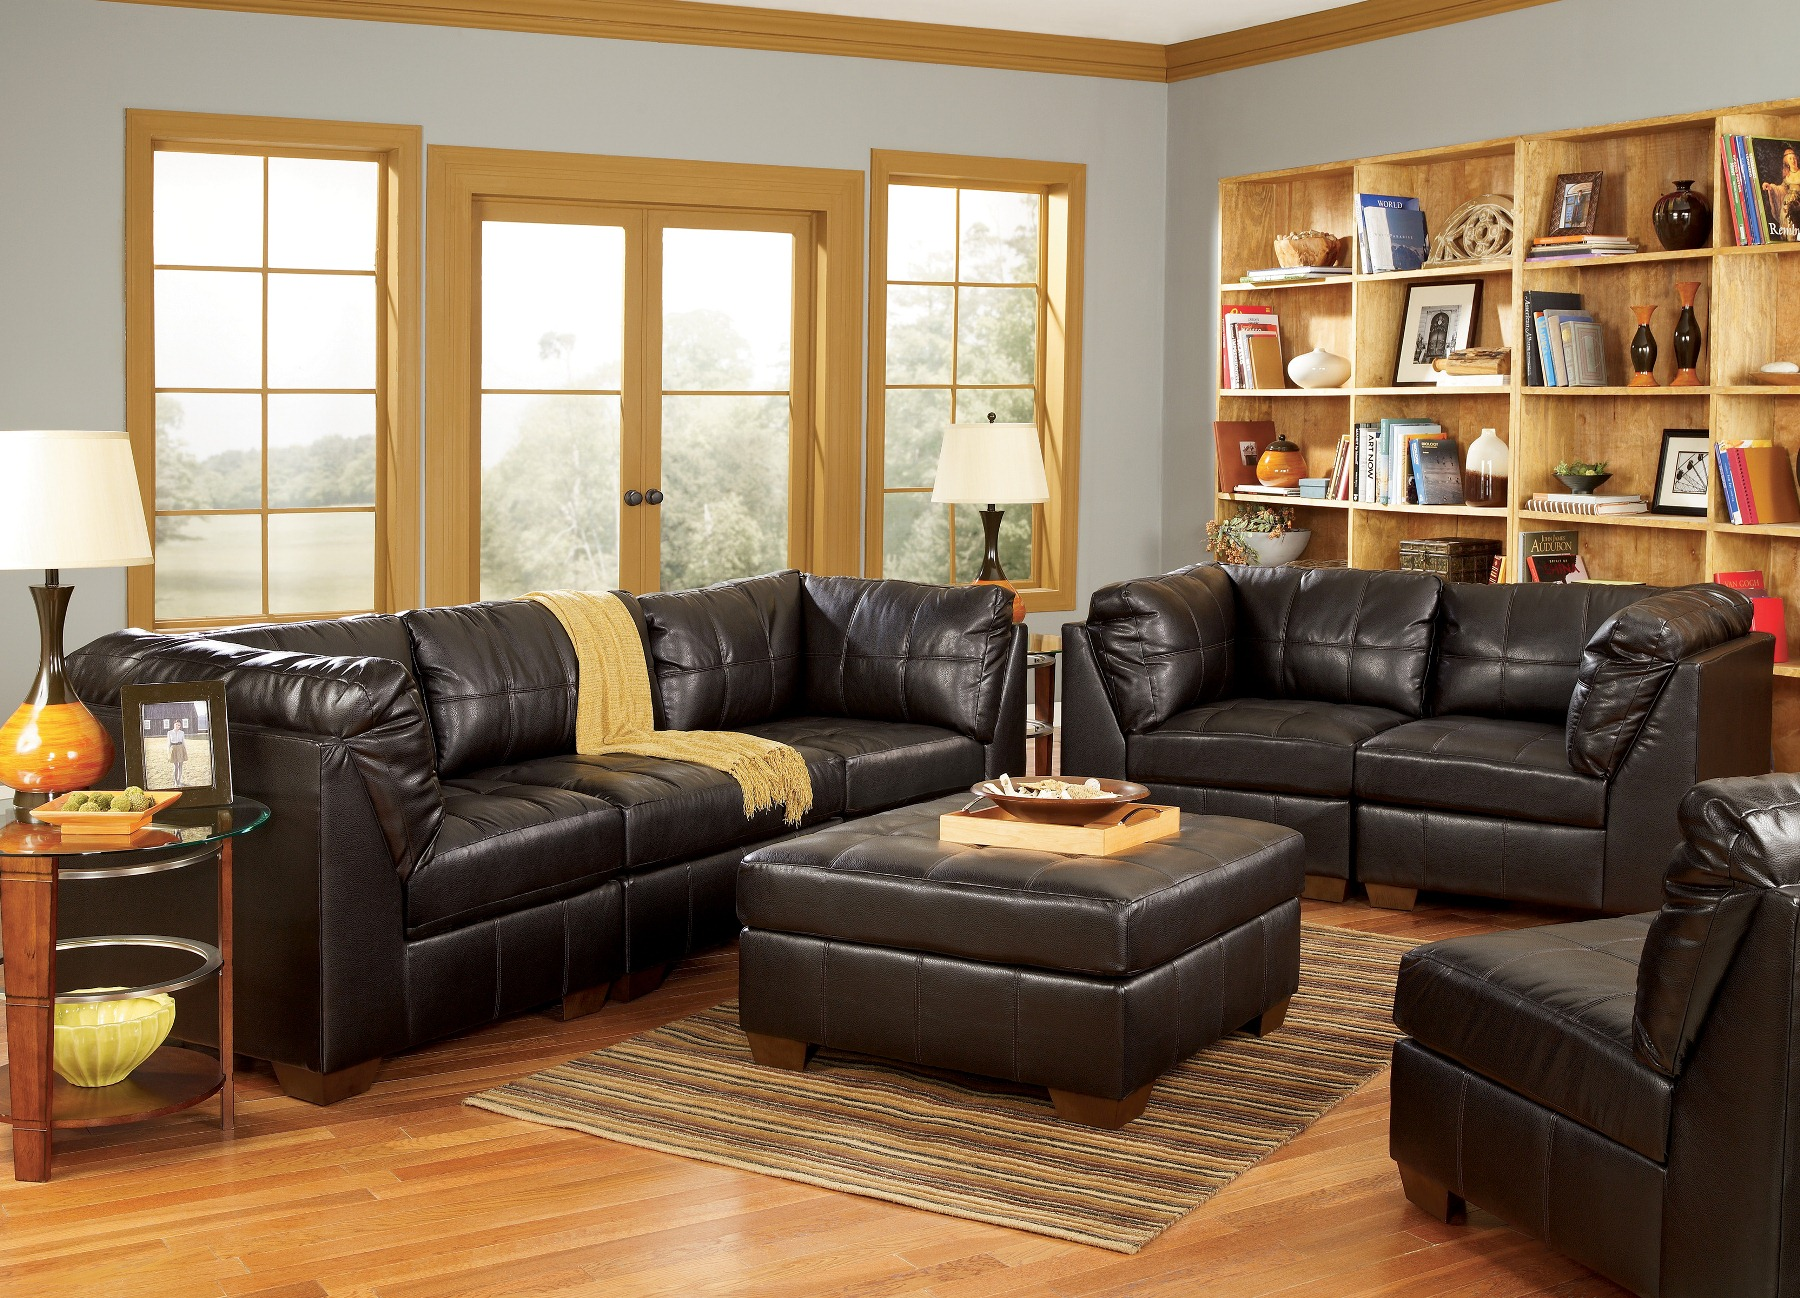 Furniture > Living Room Furniture > Leather > Marco Leather